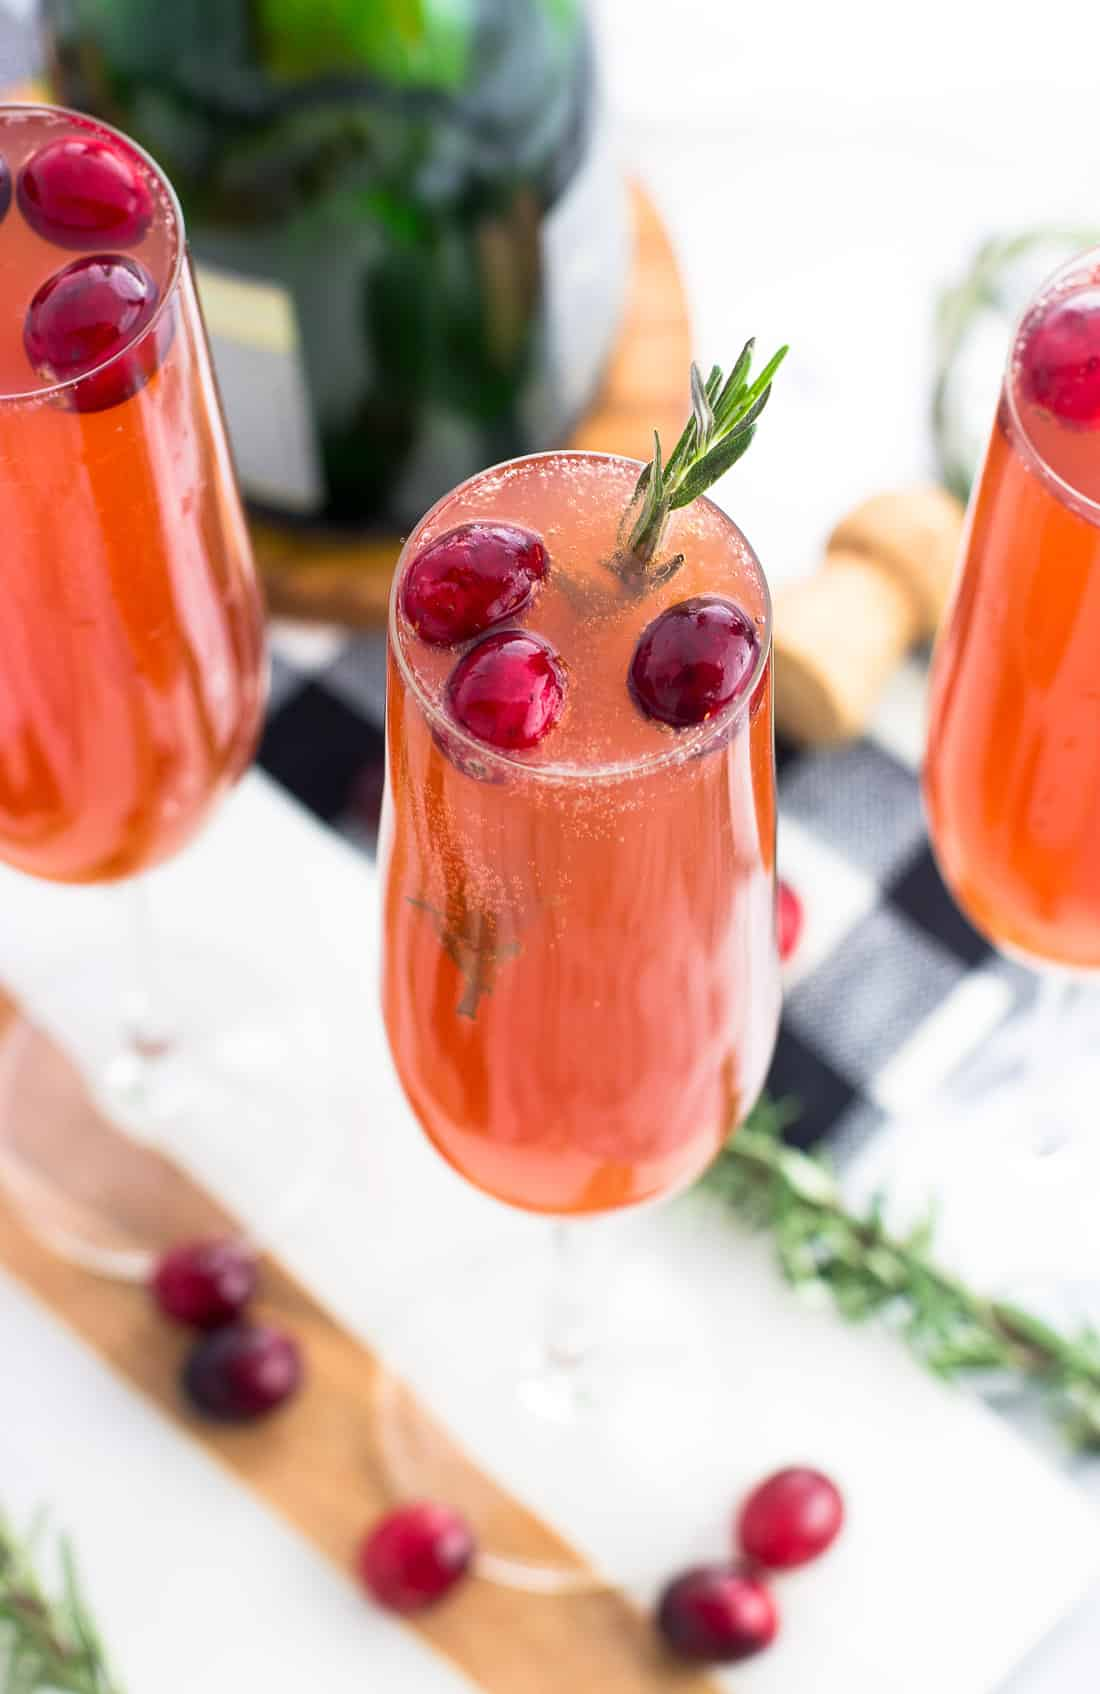 Three cranberry mimosa cocktails in champagne flutes garnished with a sprig of rosemary and fresh cranberries